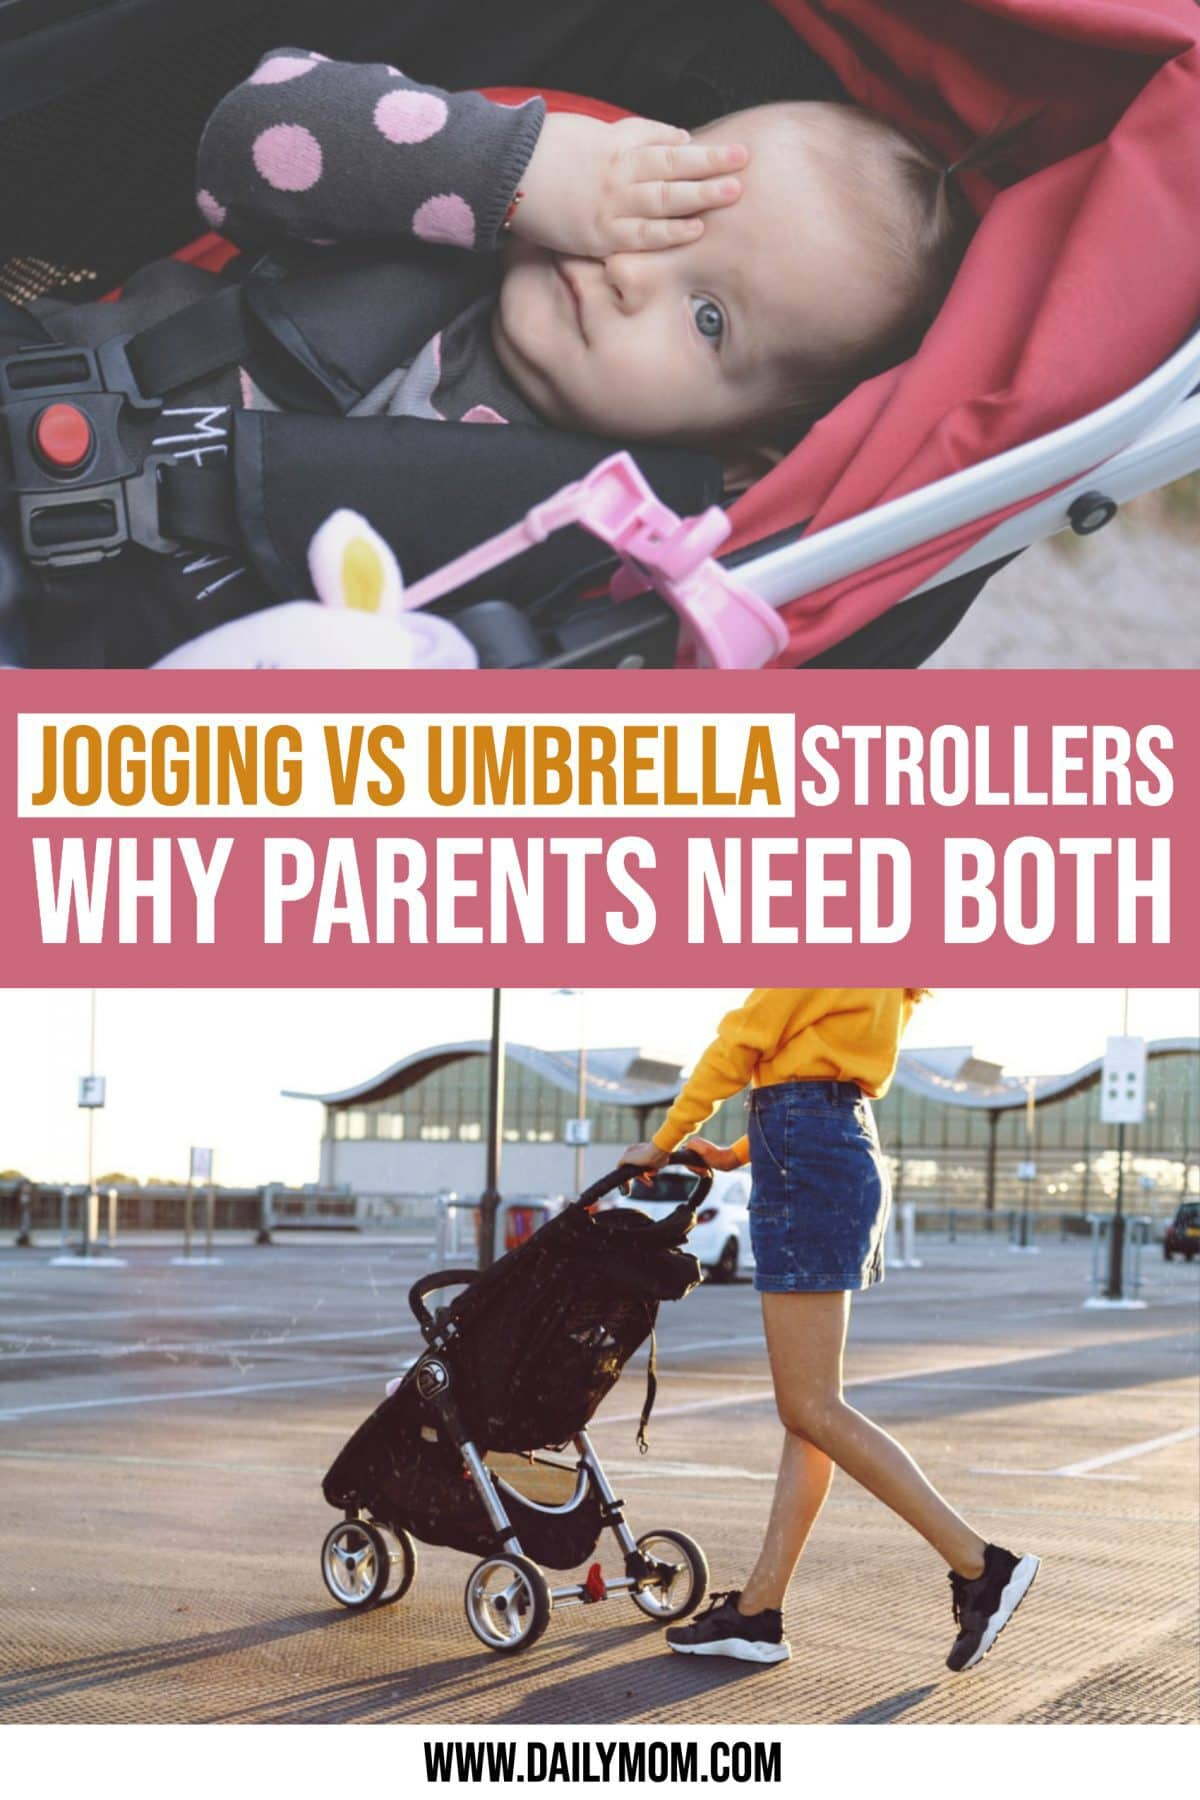 daily-mom-parent-portal Why Parents Need A Jogging Stroller And An Umbrella Stroller-pinterest